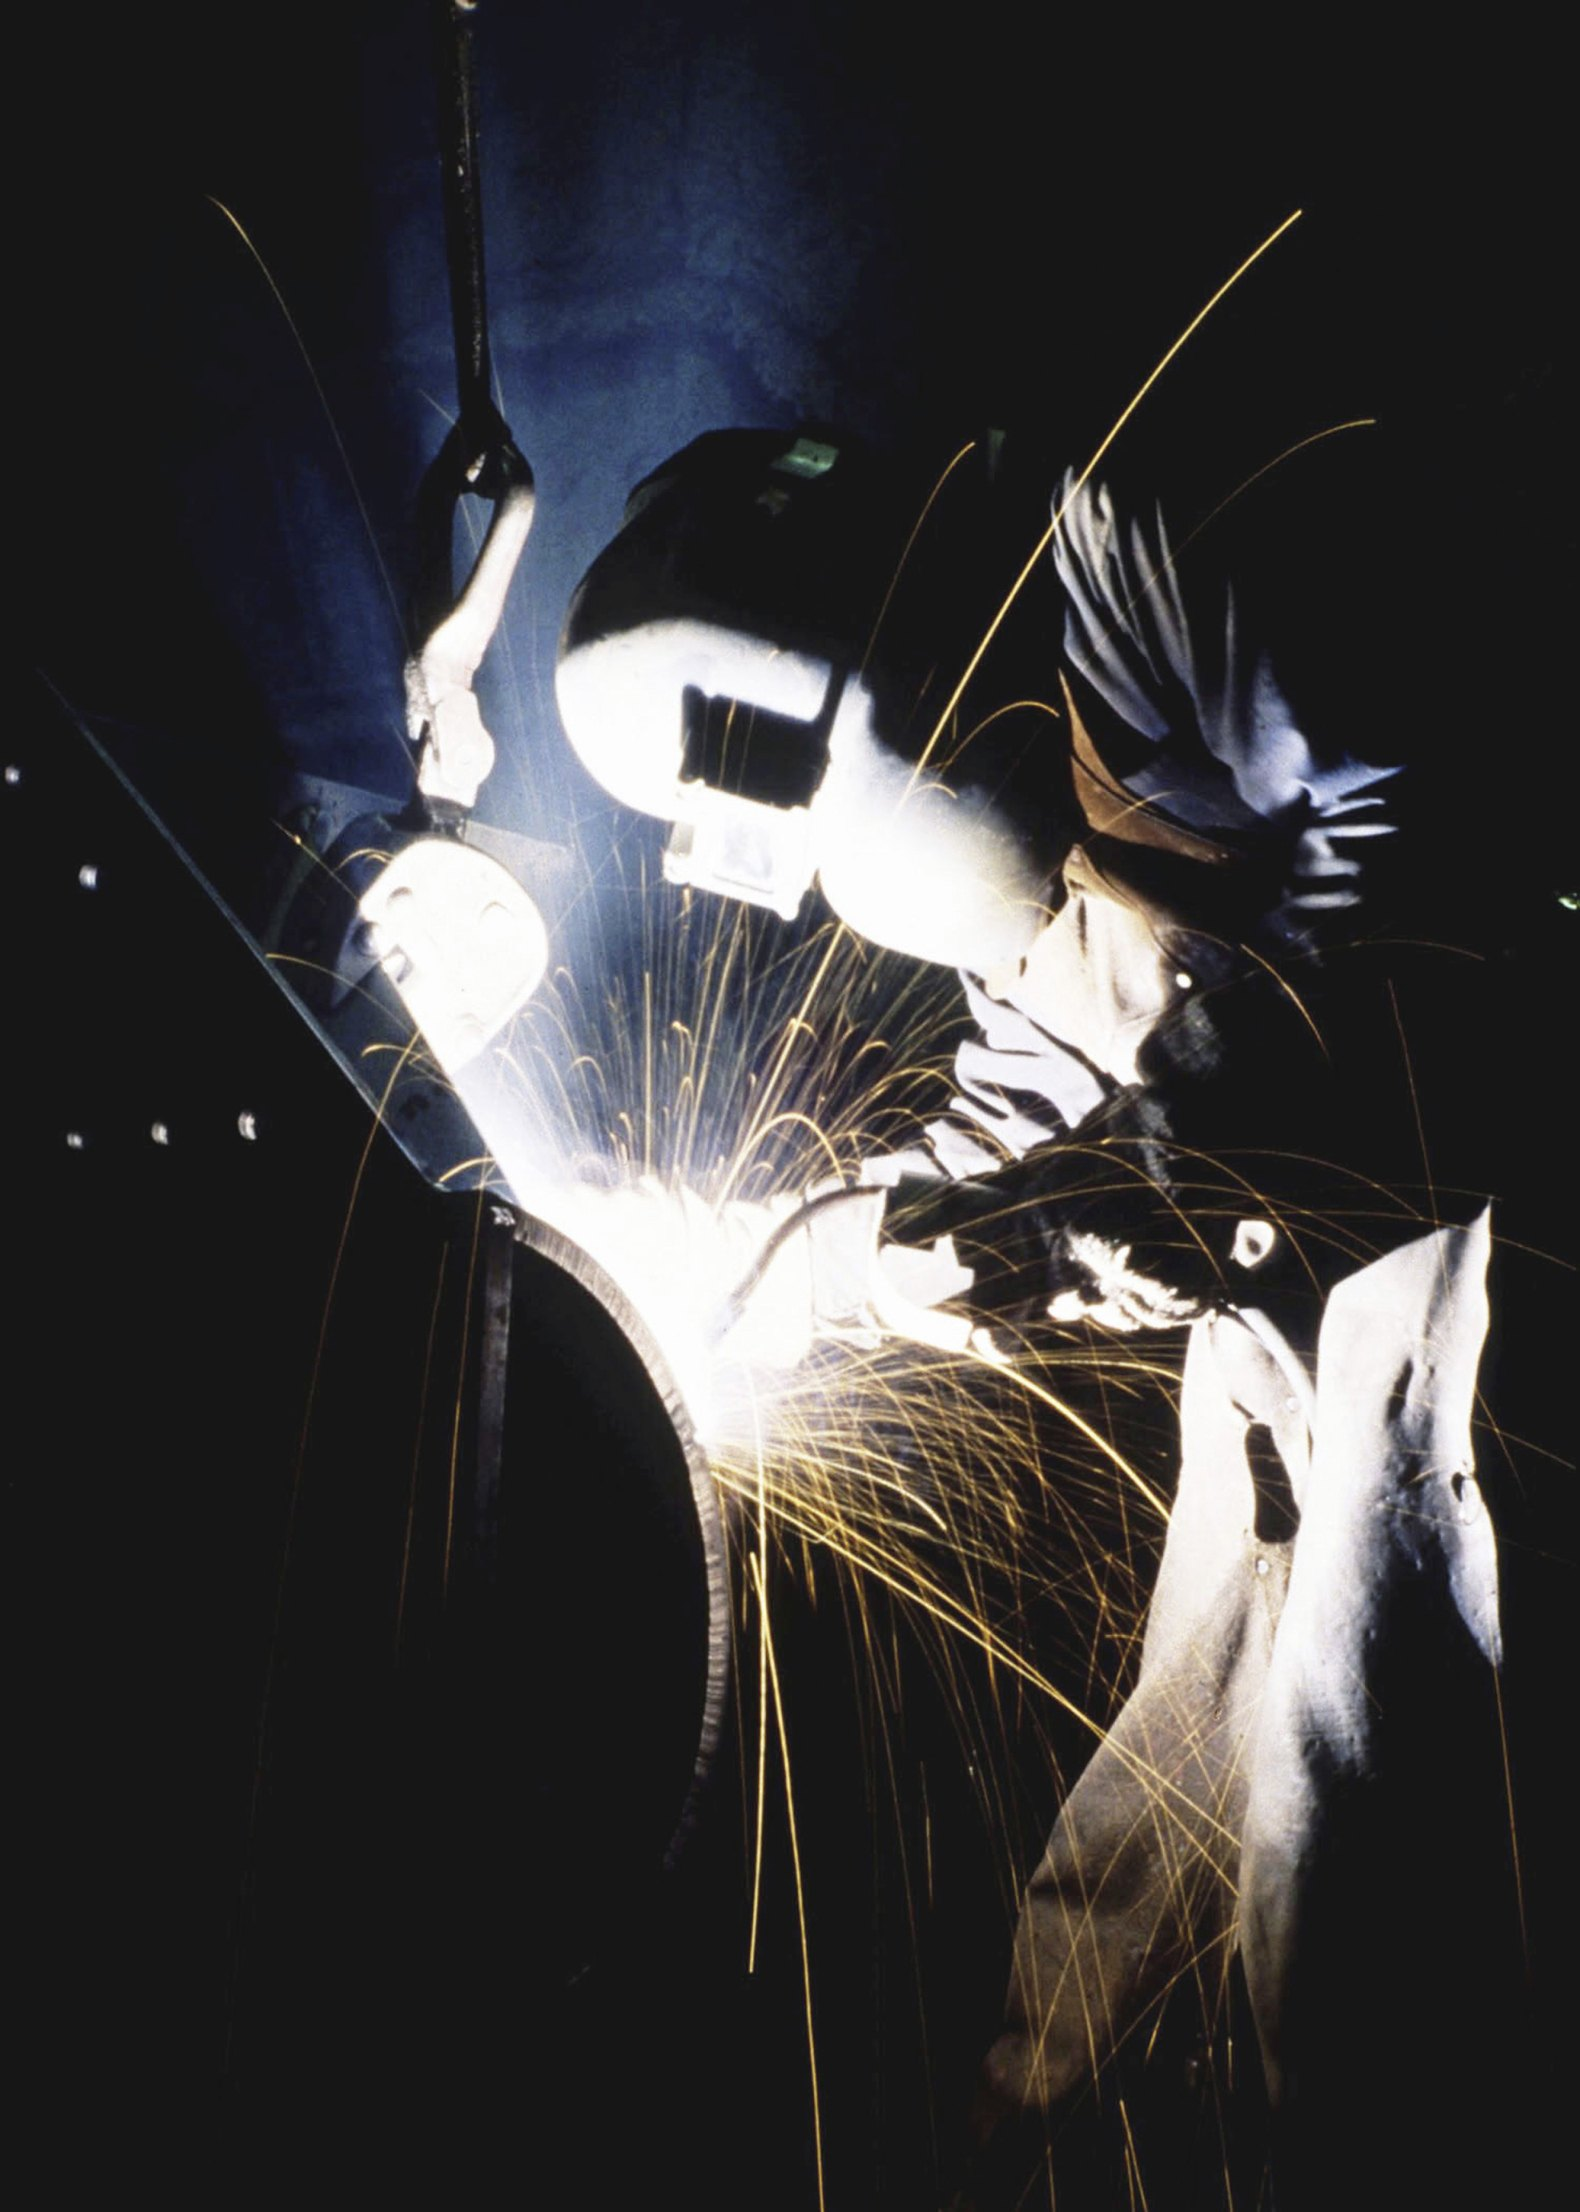 What Is Meant by Undercutting a Welded Joint? | eHow